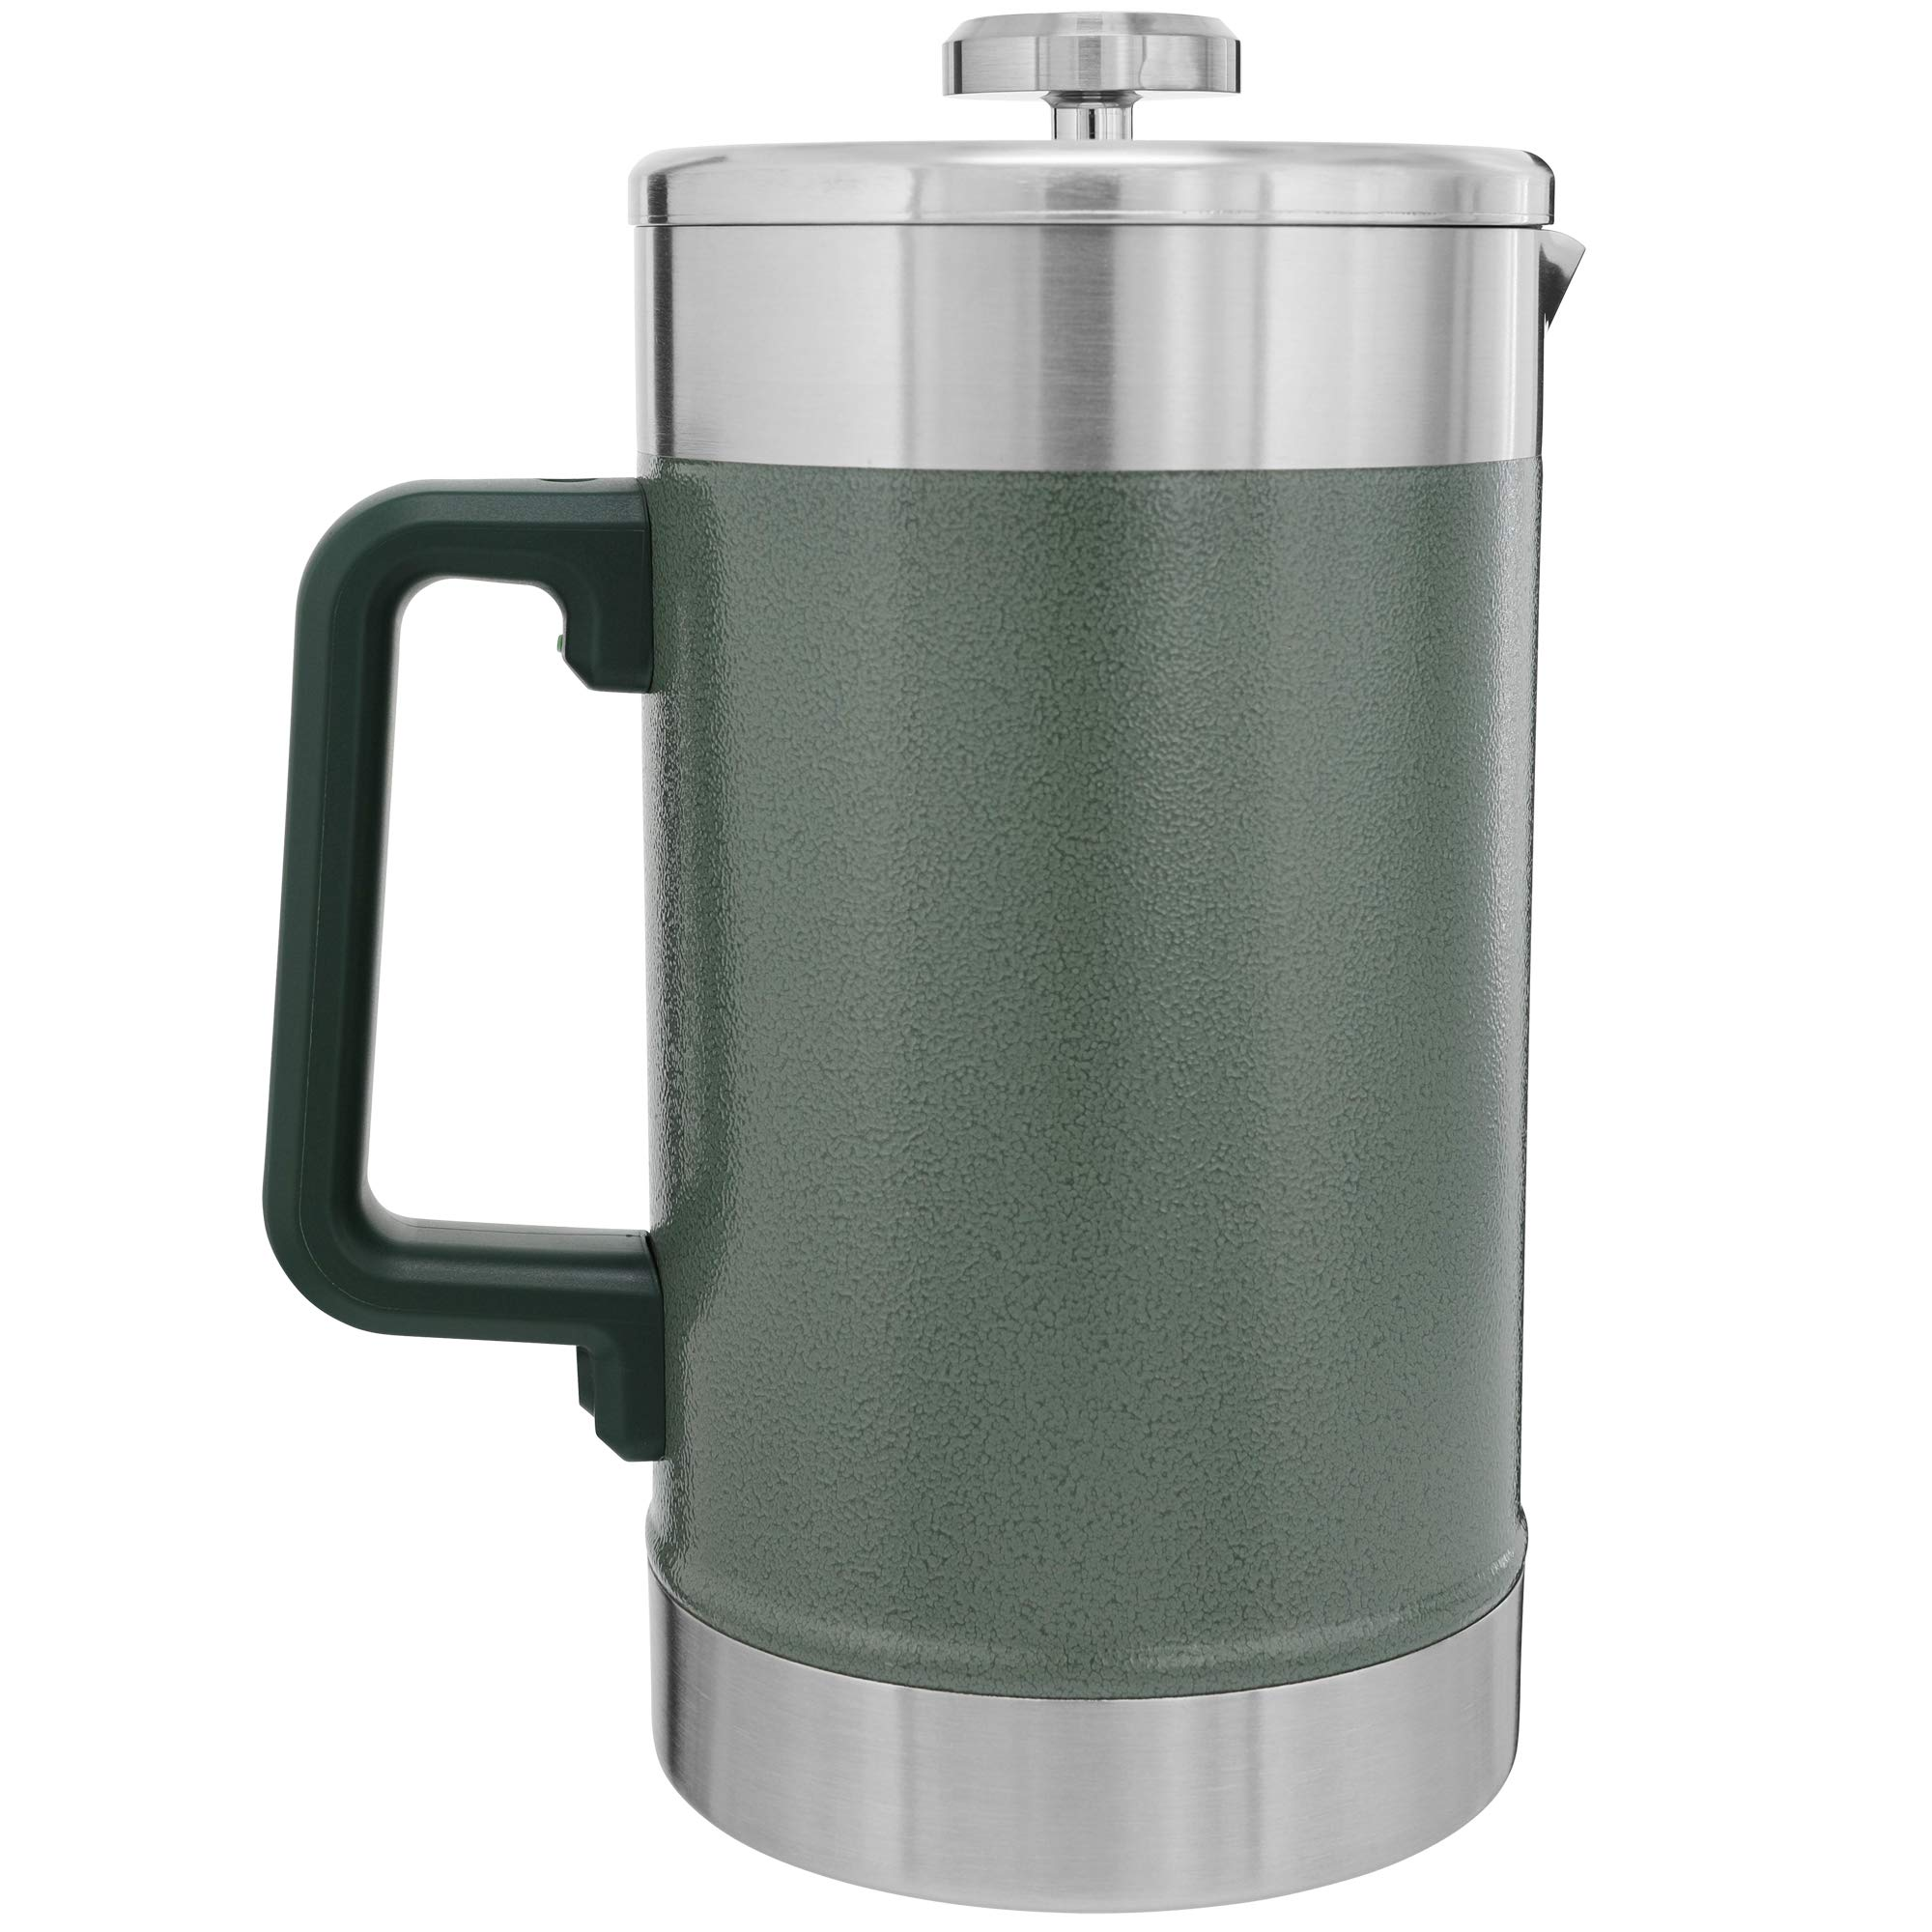 Stanley Classic Stay Hot French Press Hammertone Green 48oz by Stanley (Image #4)